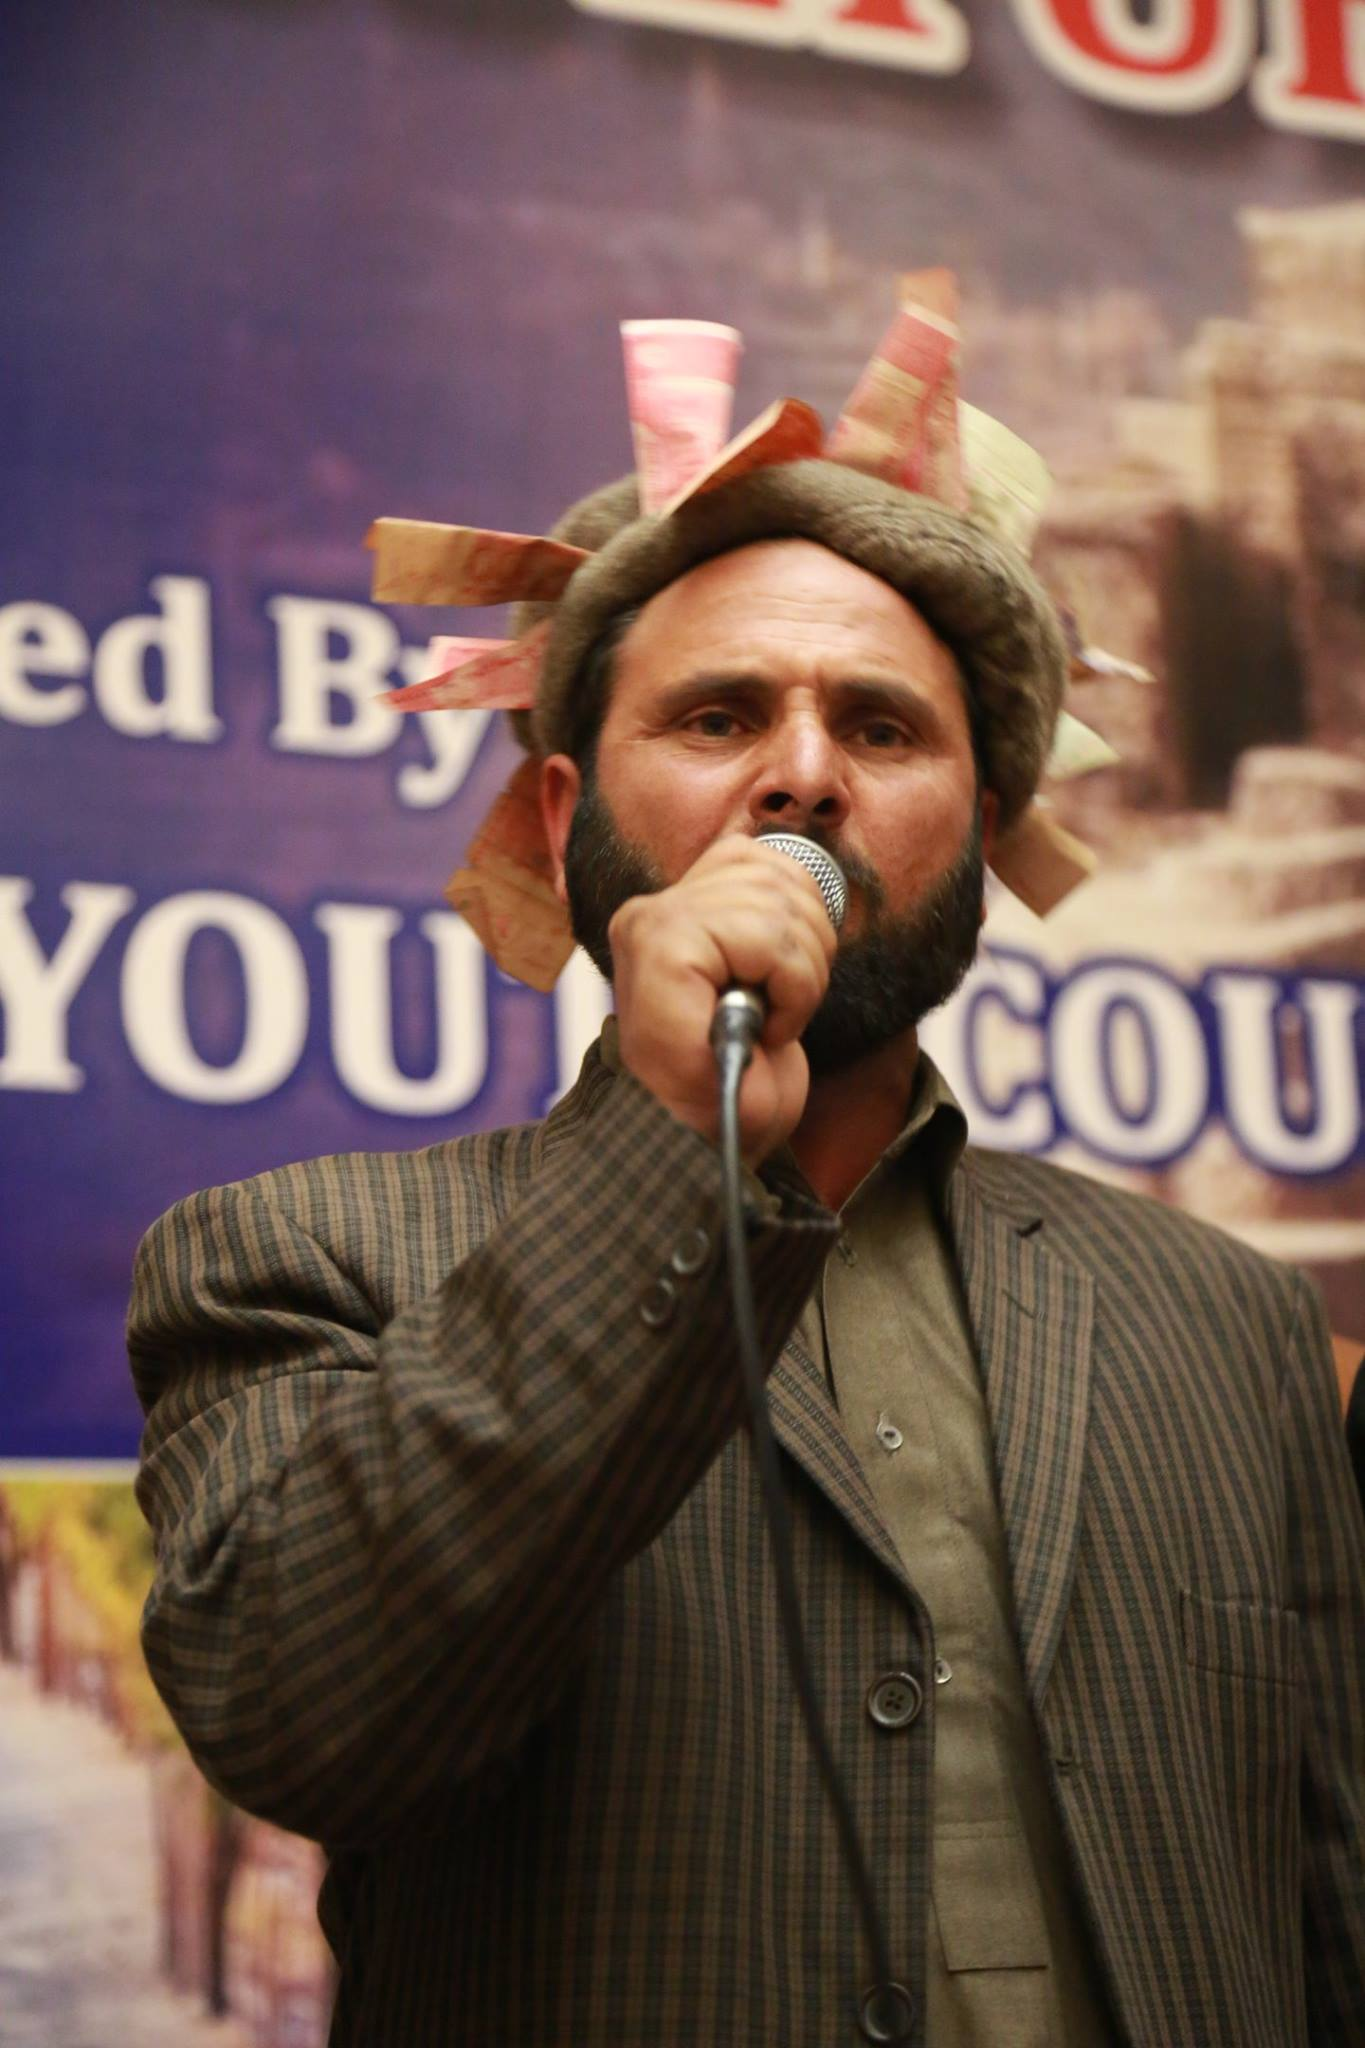 GB Youth Council Lahore (2)